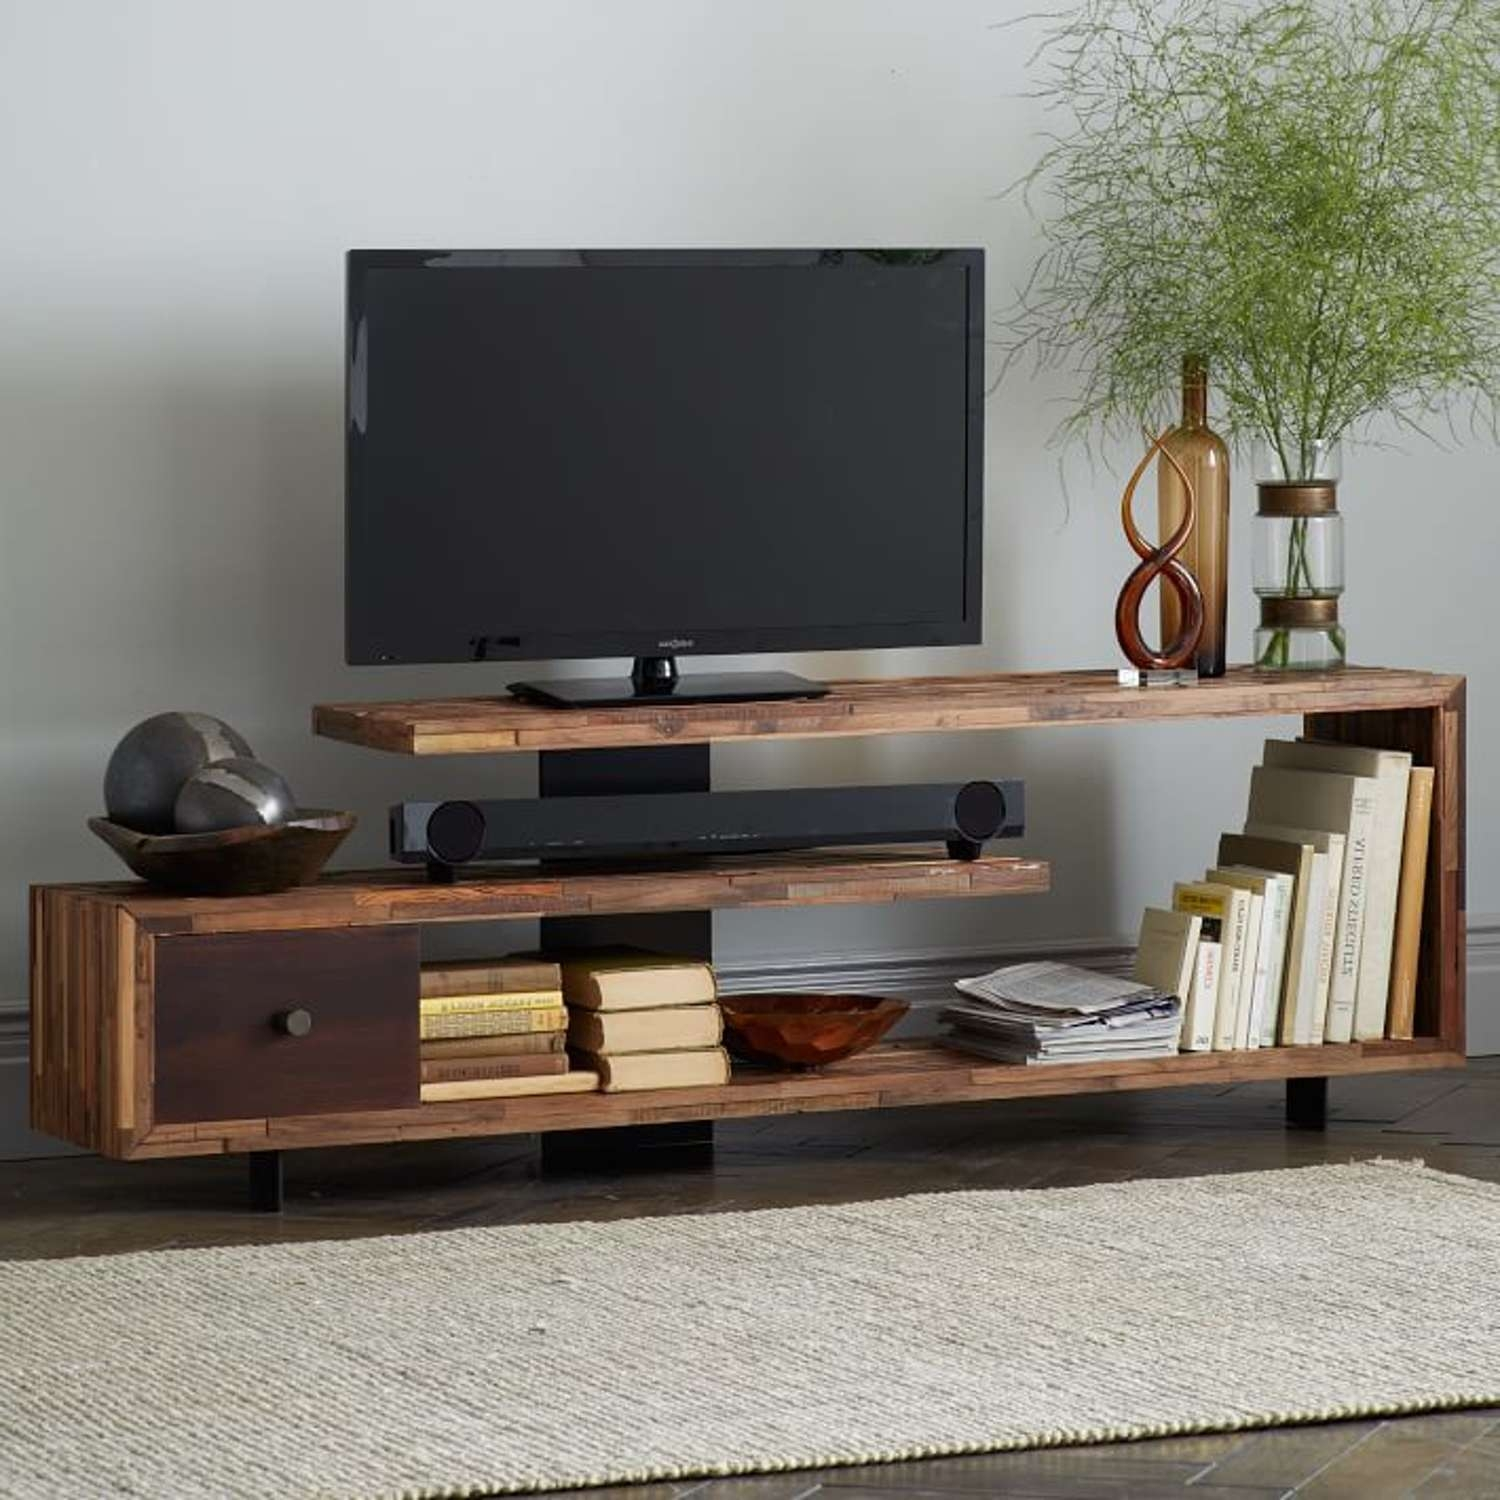 Good Affordable Tv Stands 15 In Modern Decoration Design With Pertaining To Modern Wood Tv Stands (View 2 of 15)